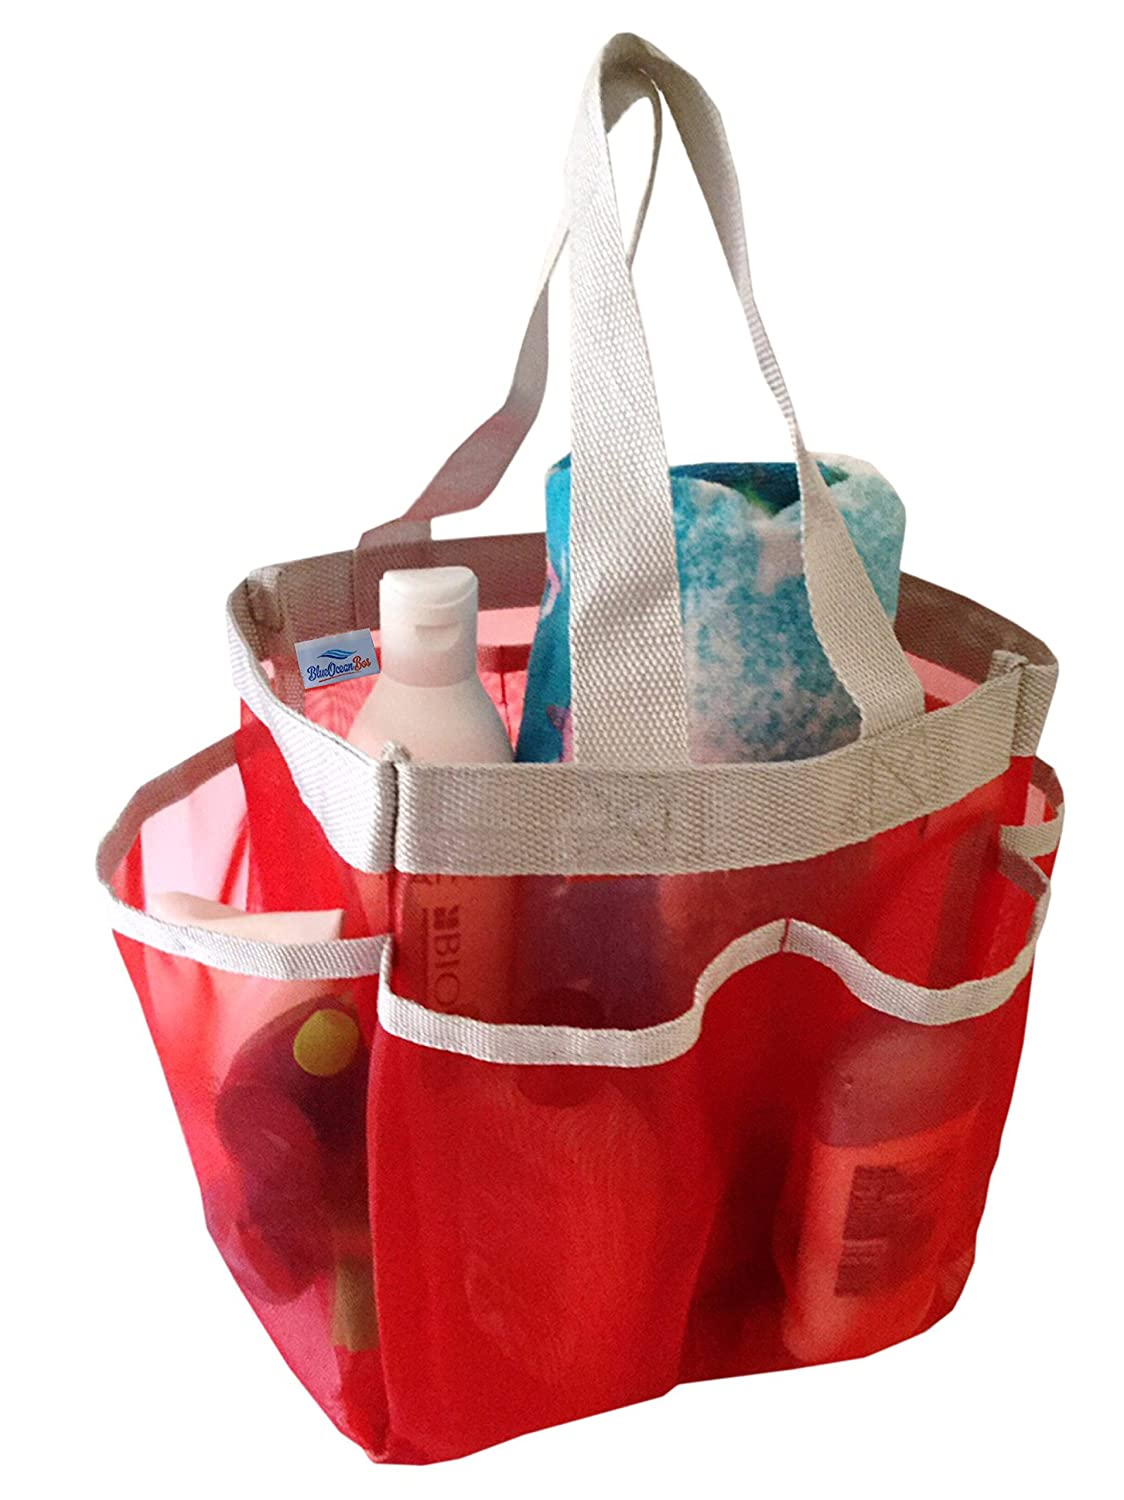 Dorm Room Shower Tote